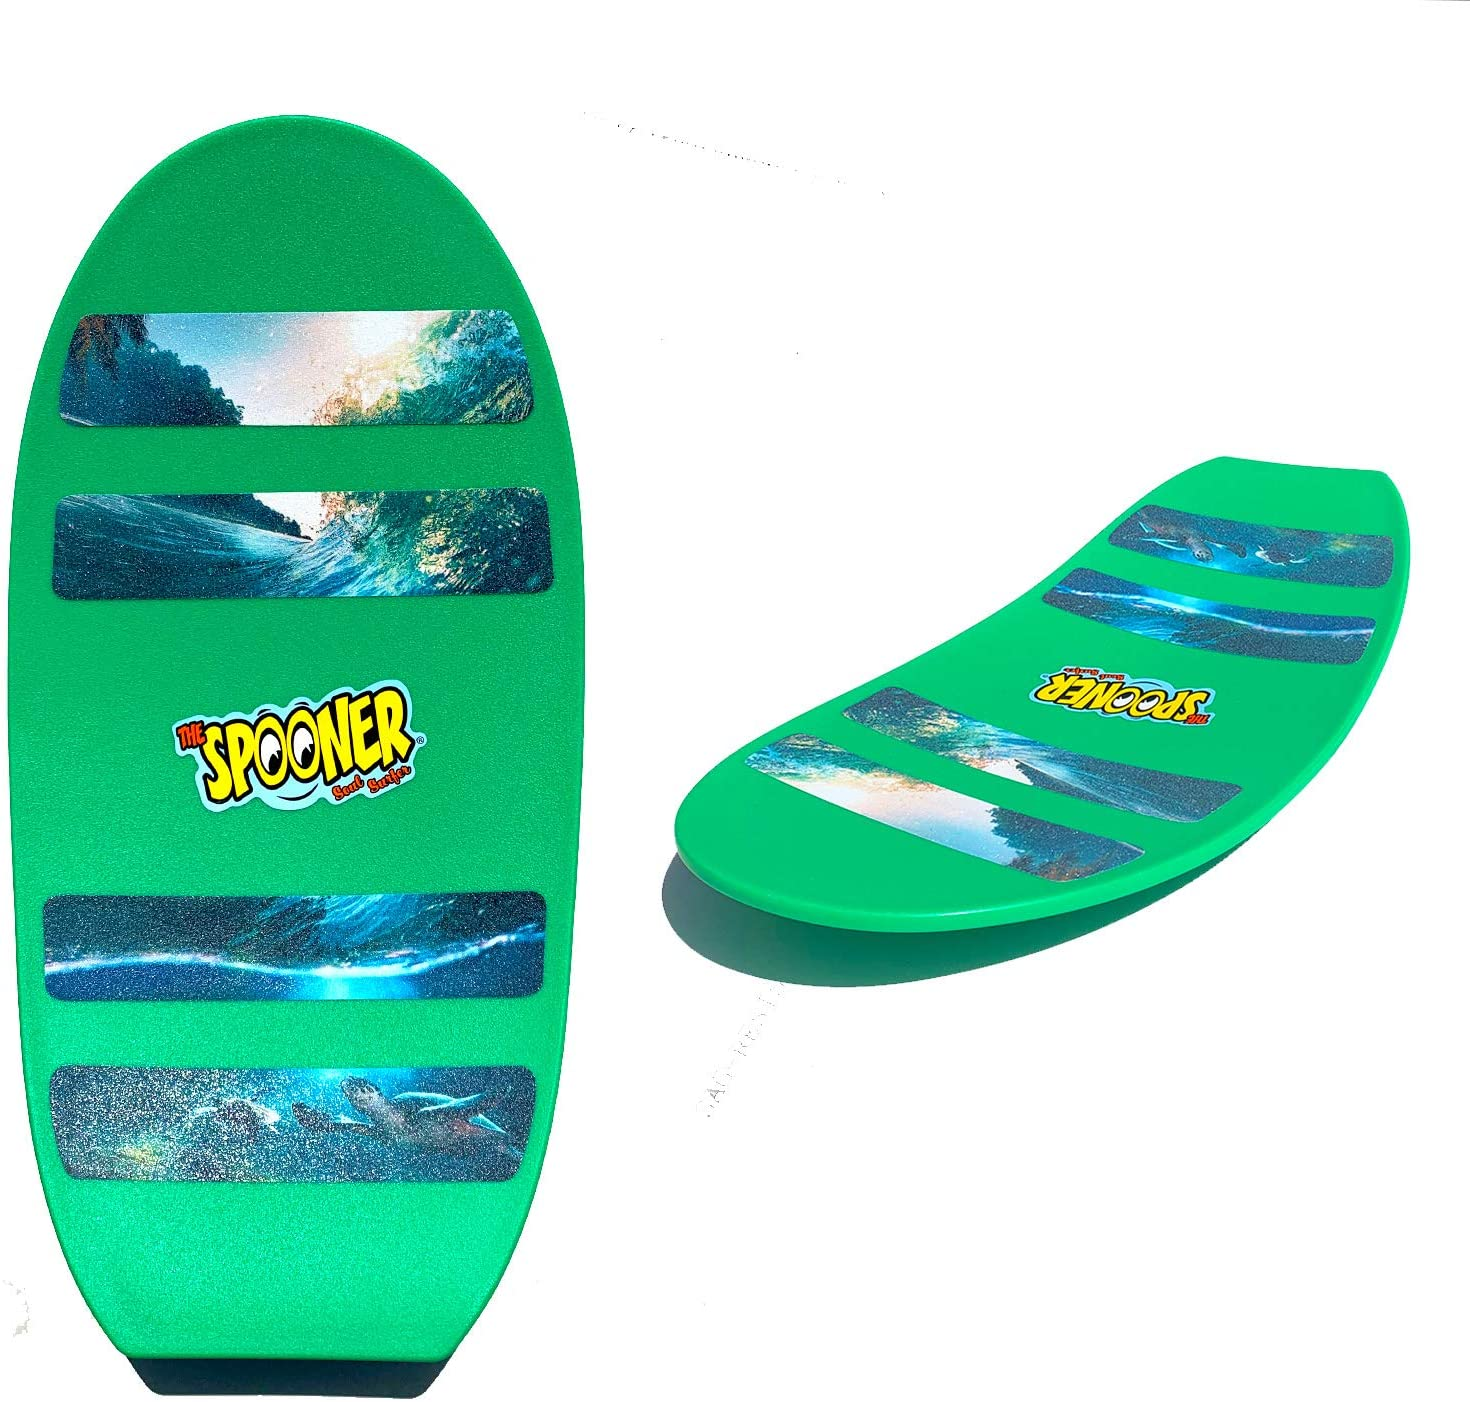 Spooner Boards Freestyle - Green: Toys & Games